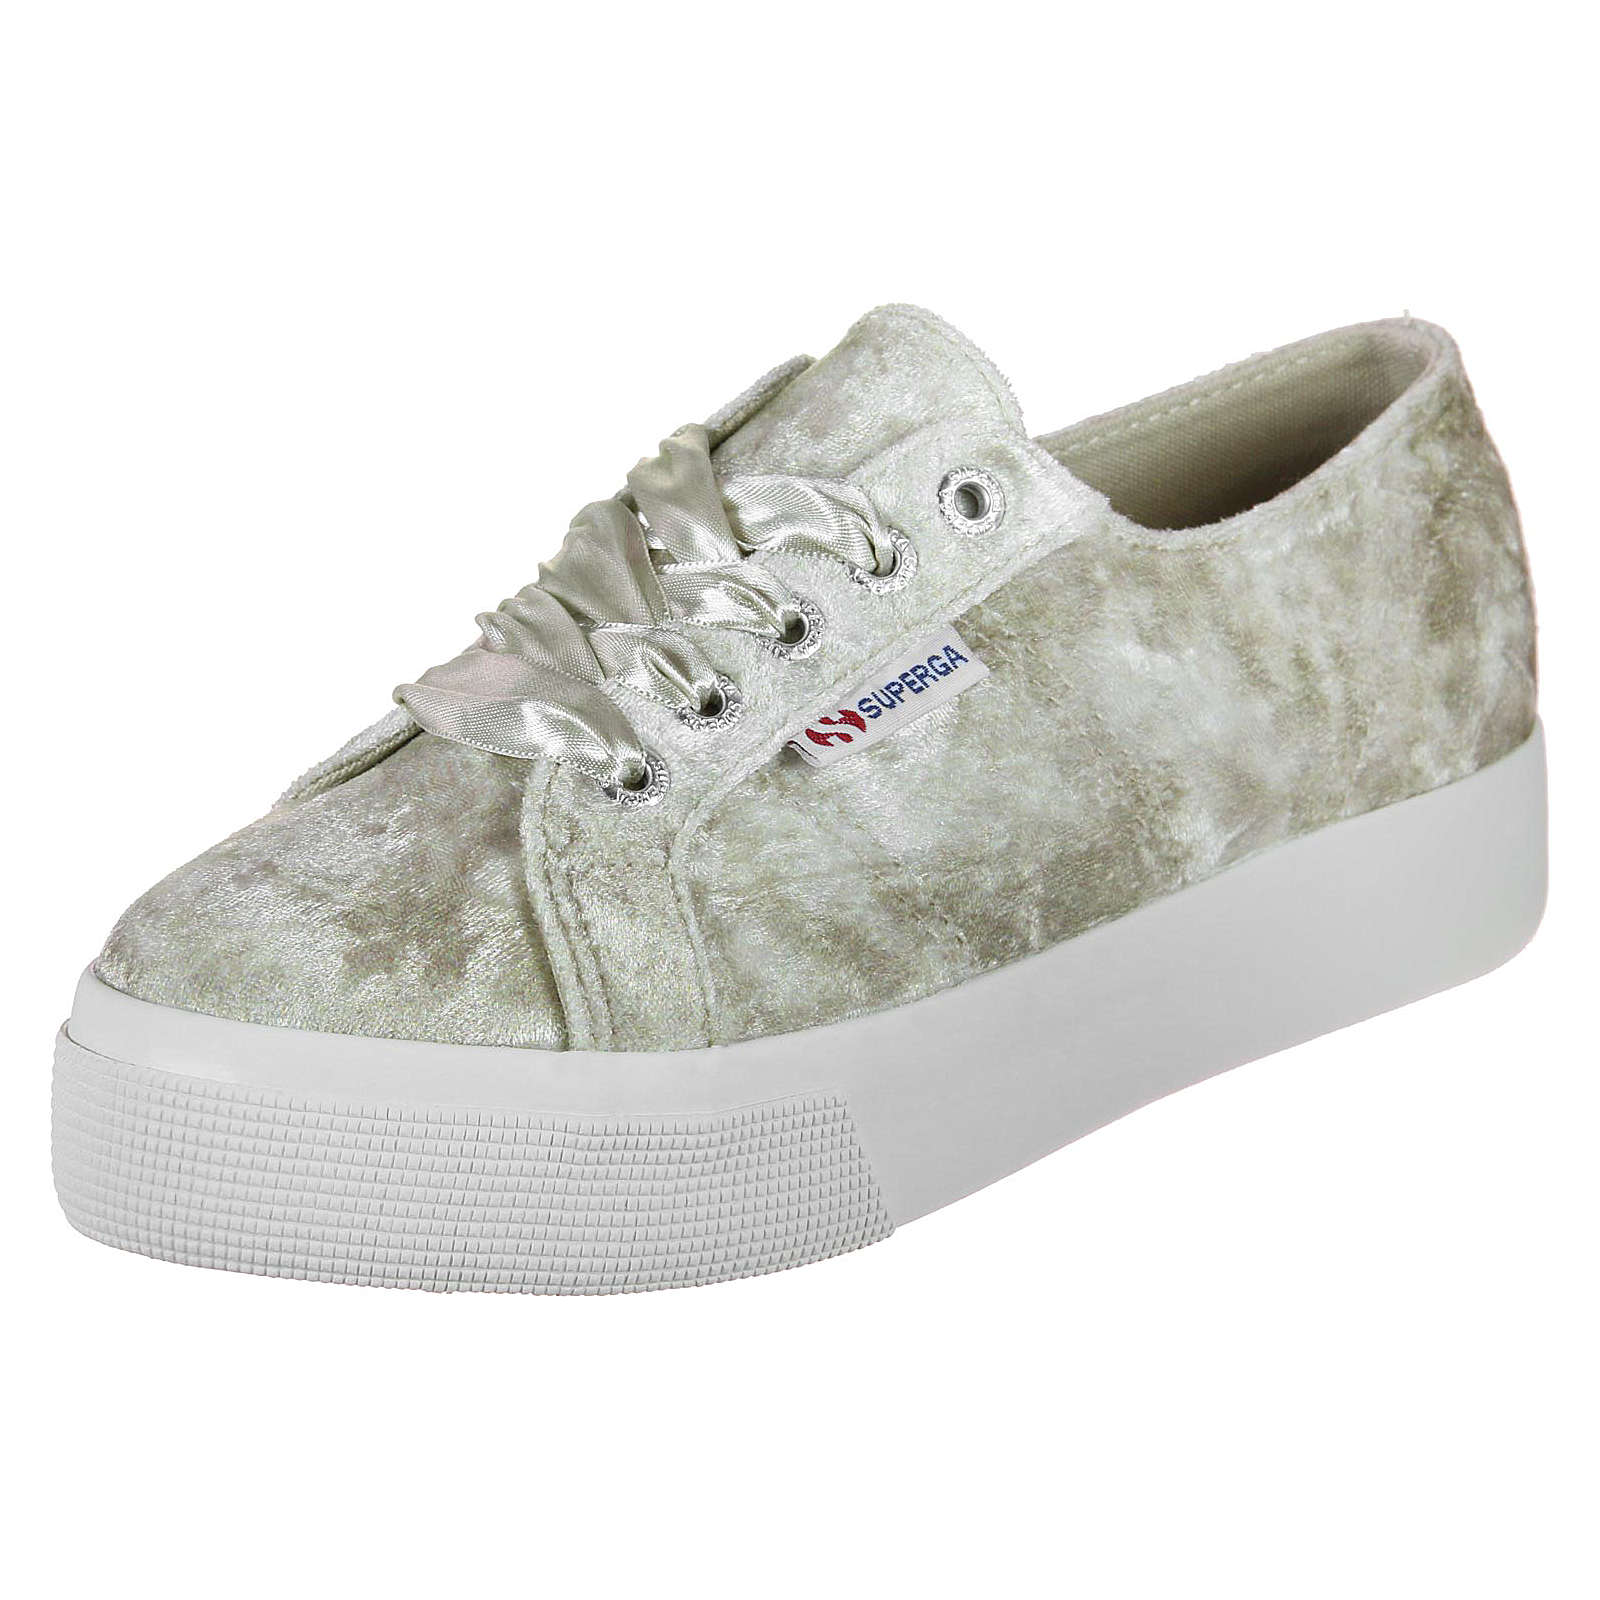 Superga® Superga Sneaker 2730 Velvet Shiny W in lässigem Look Sneakers Low beige Damen Gr. 39